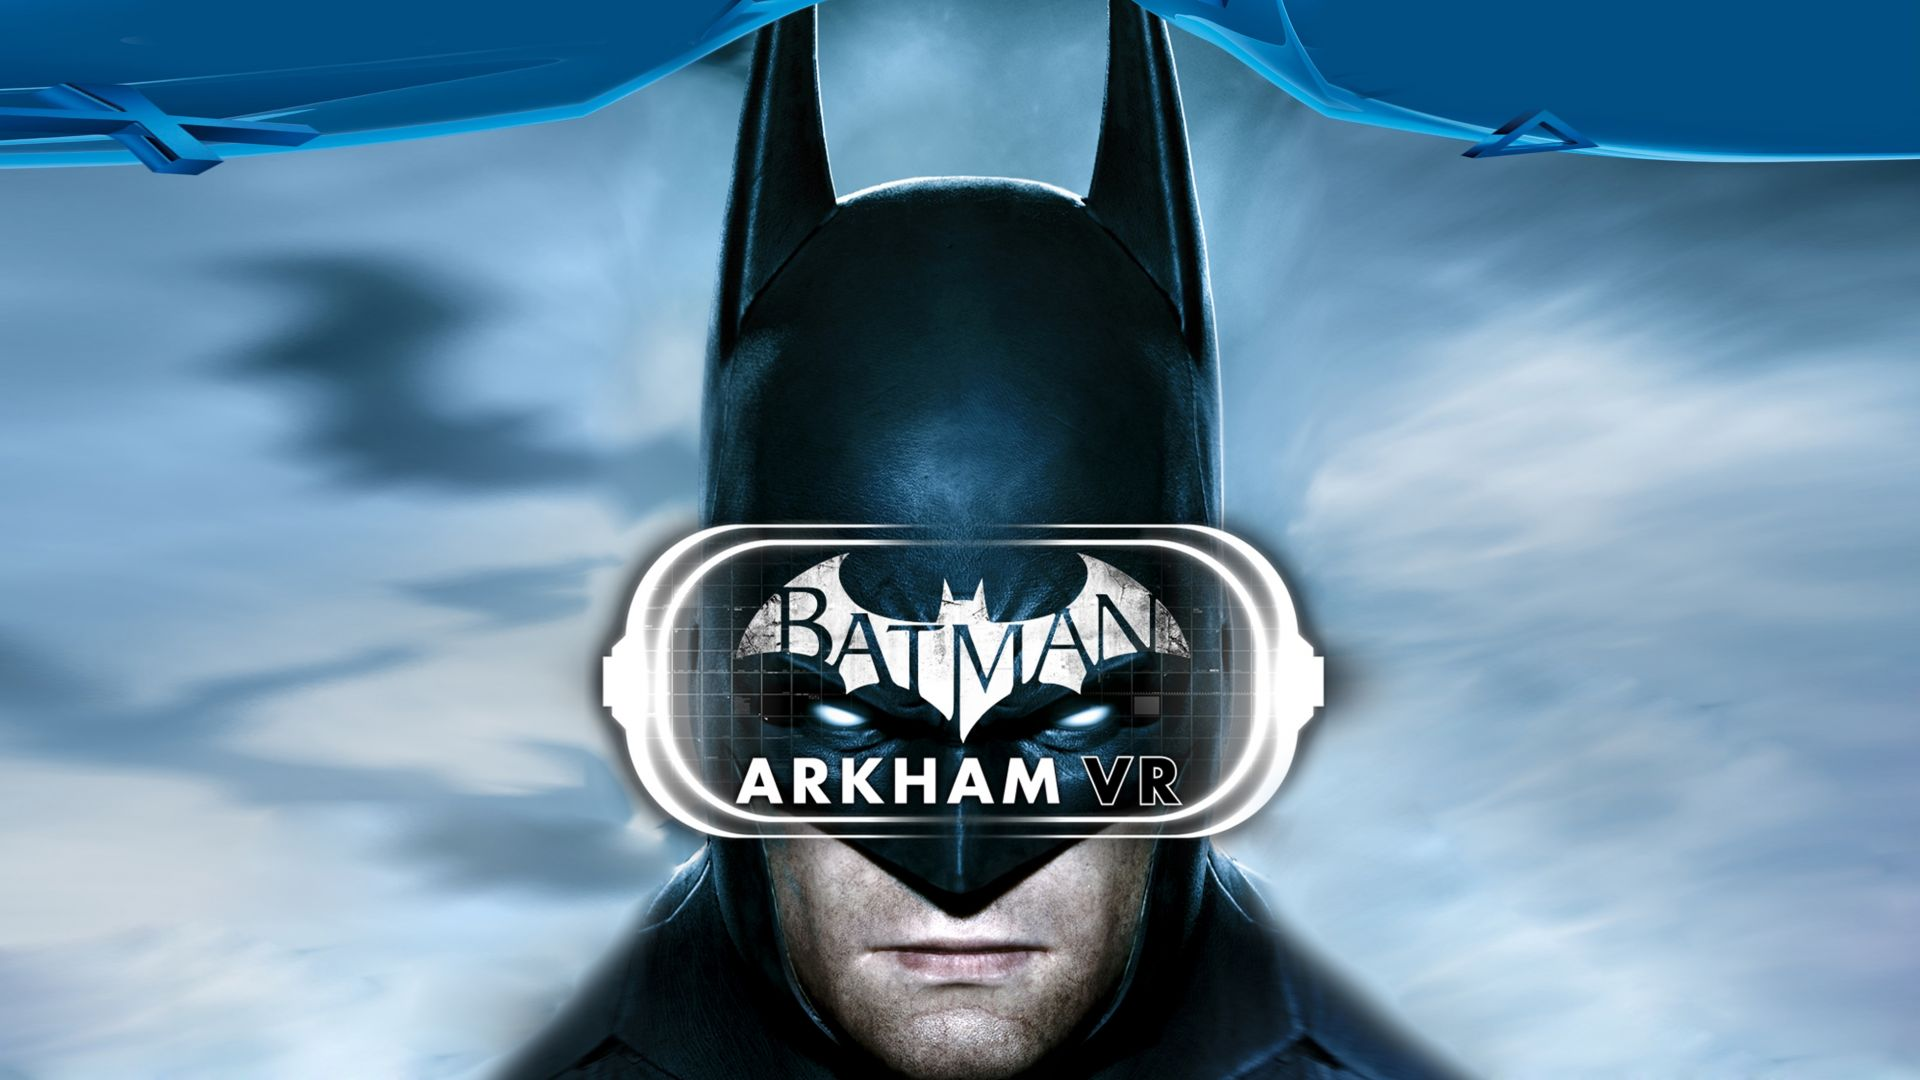 Batman: Arkham VR, бэтмен, ВР, ПС ВР, пс4, Batman: Arkham VR, PS VR, PS4 (horizontal)